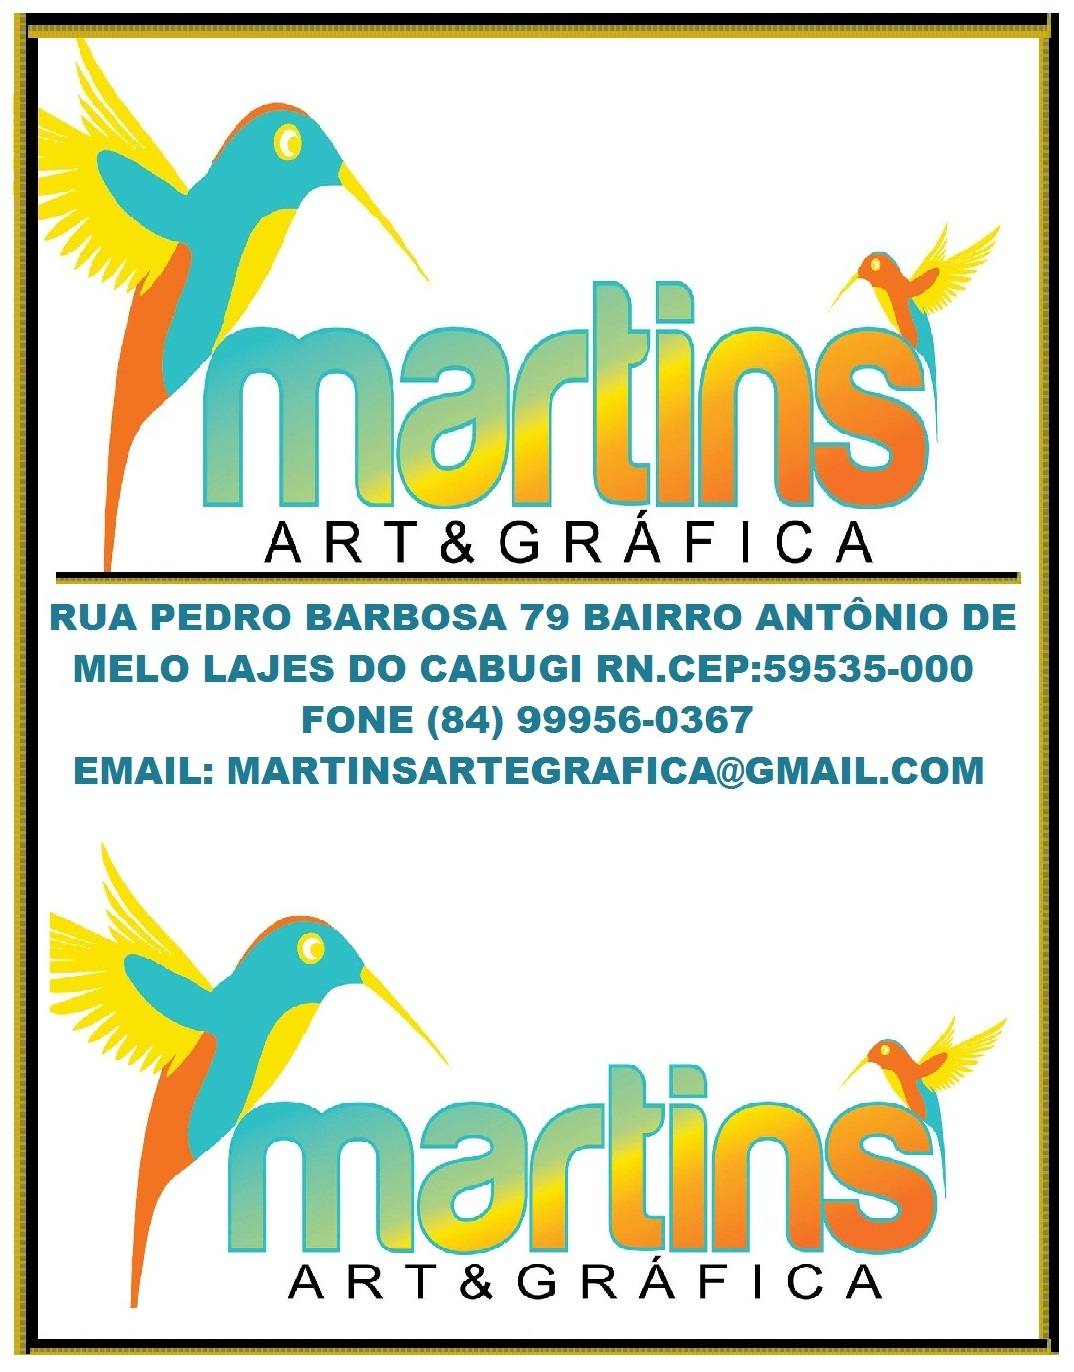 MARTINS ART E GRÁFICA LAJES DO CABUGI RN